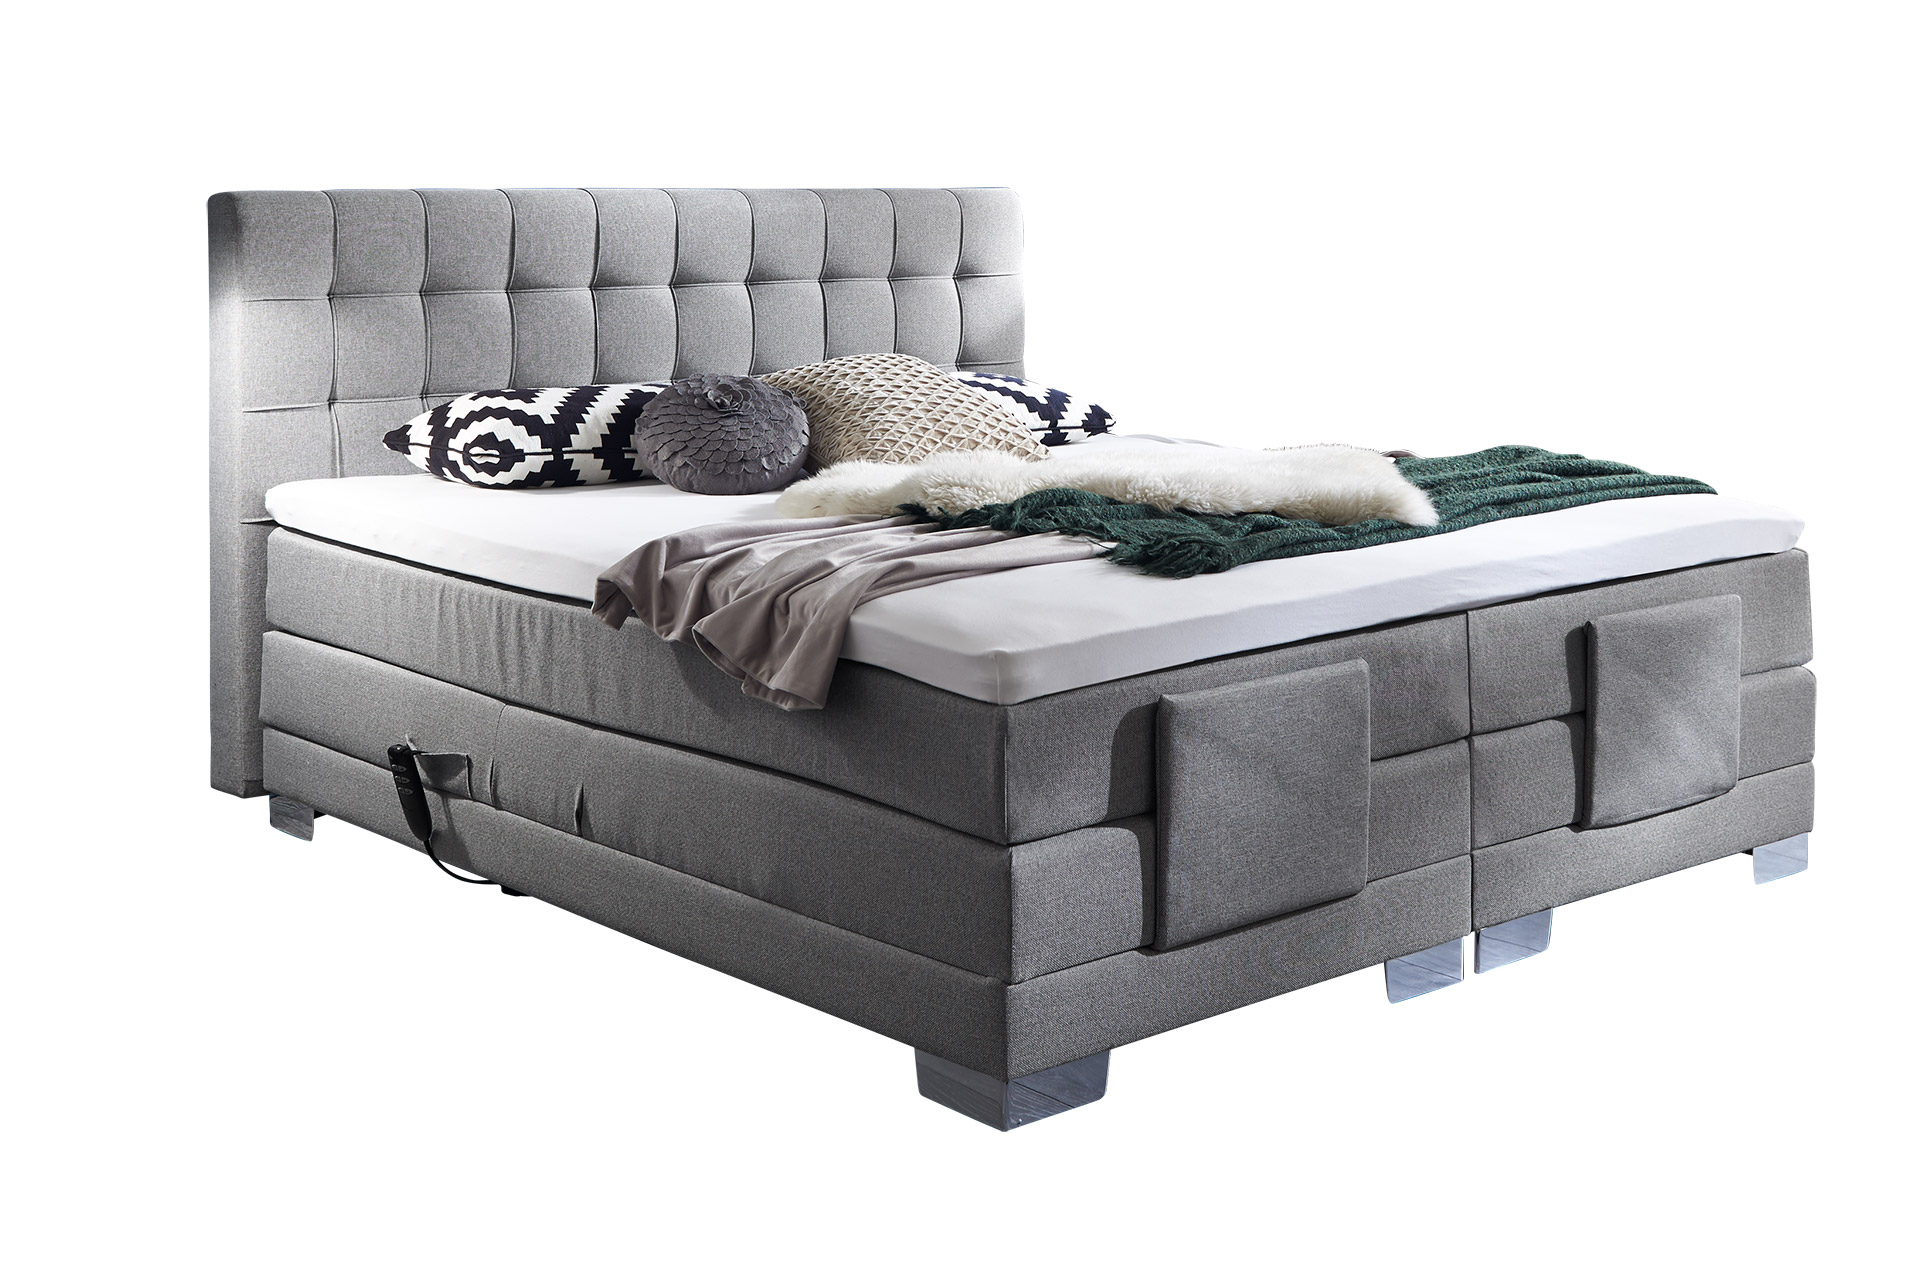 boxspringbett elektrisch verstellbar belcada. Black Bedroom Furniture Sets. Home Design Ideas